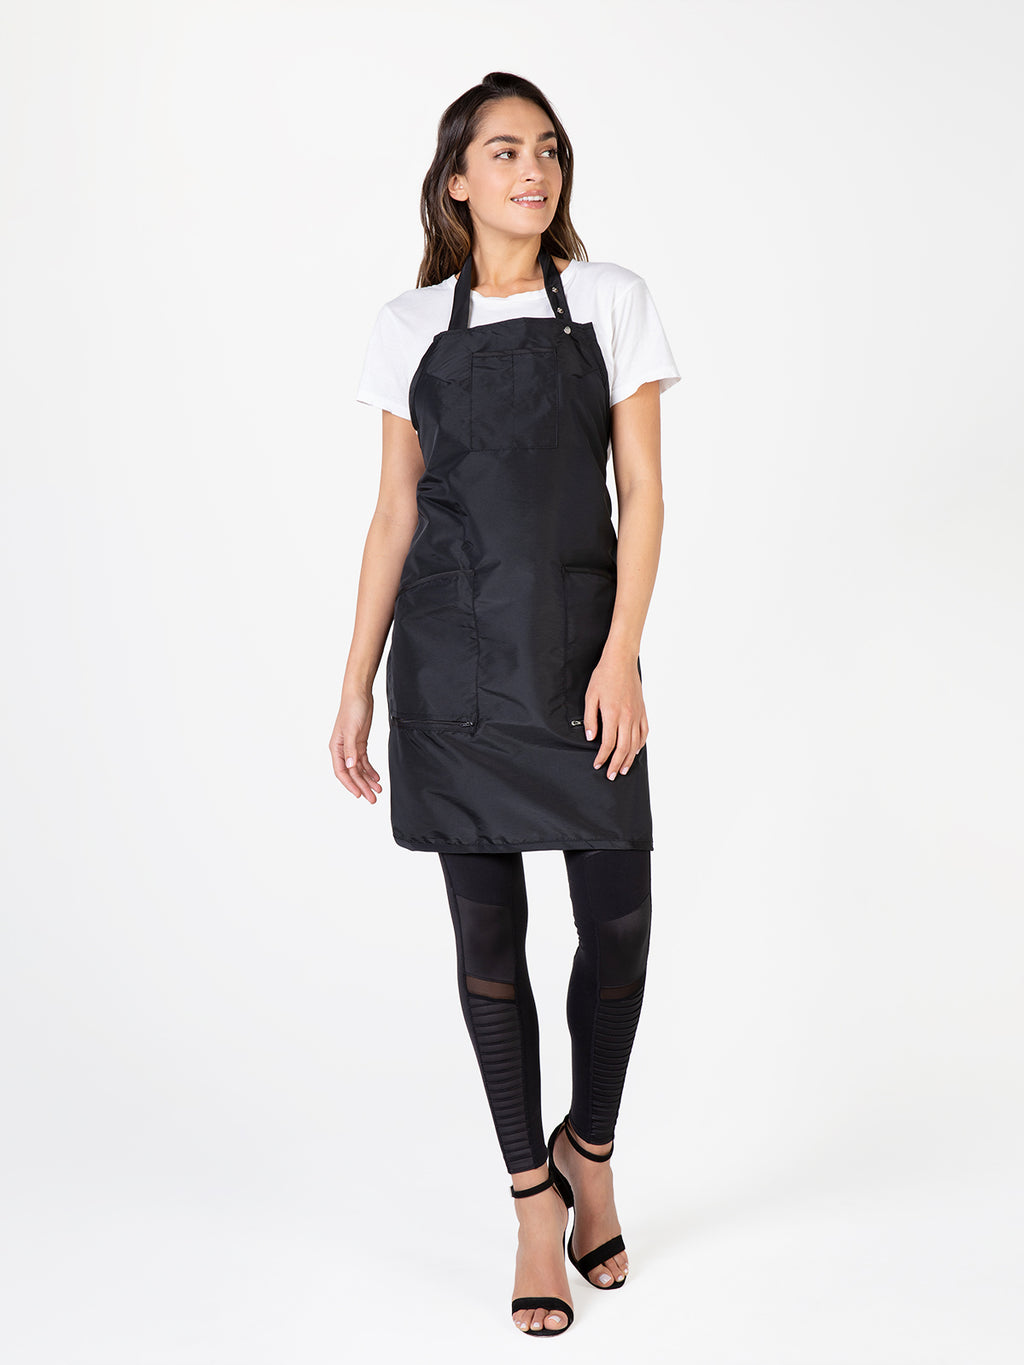 Chemical Bleach-Proof Apron Betty Dain Creations